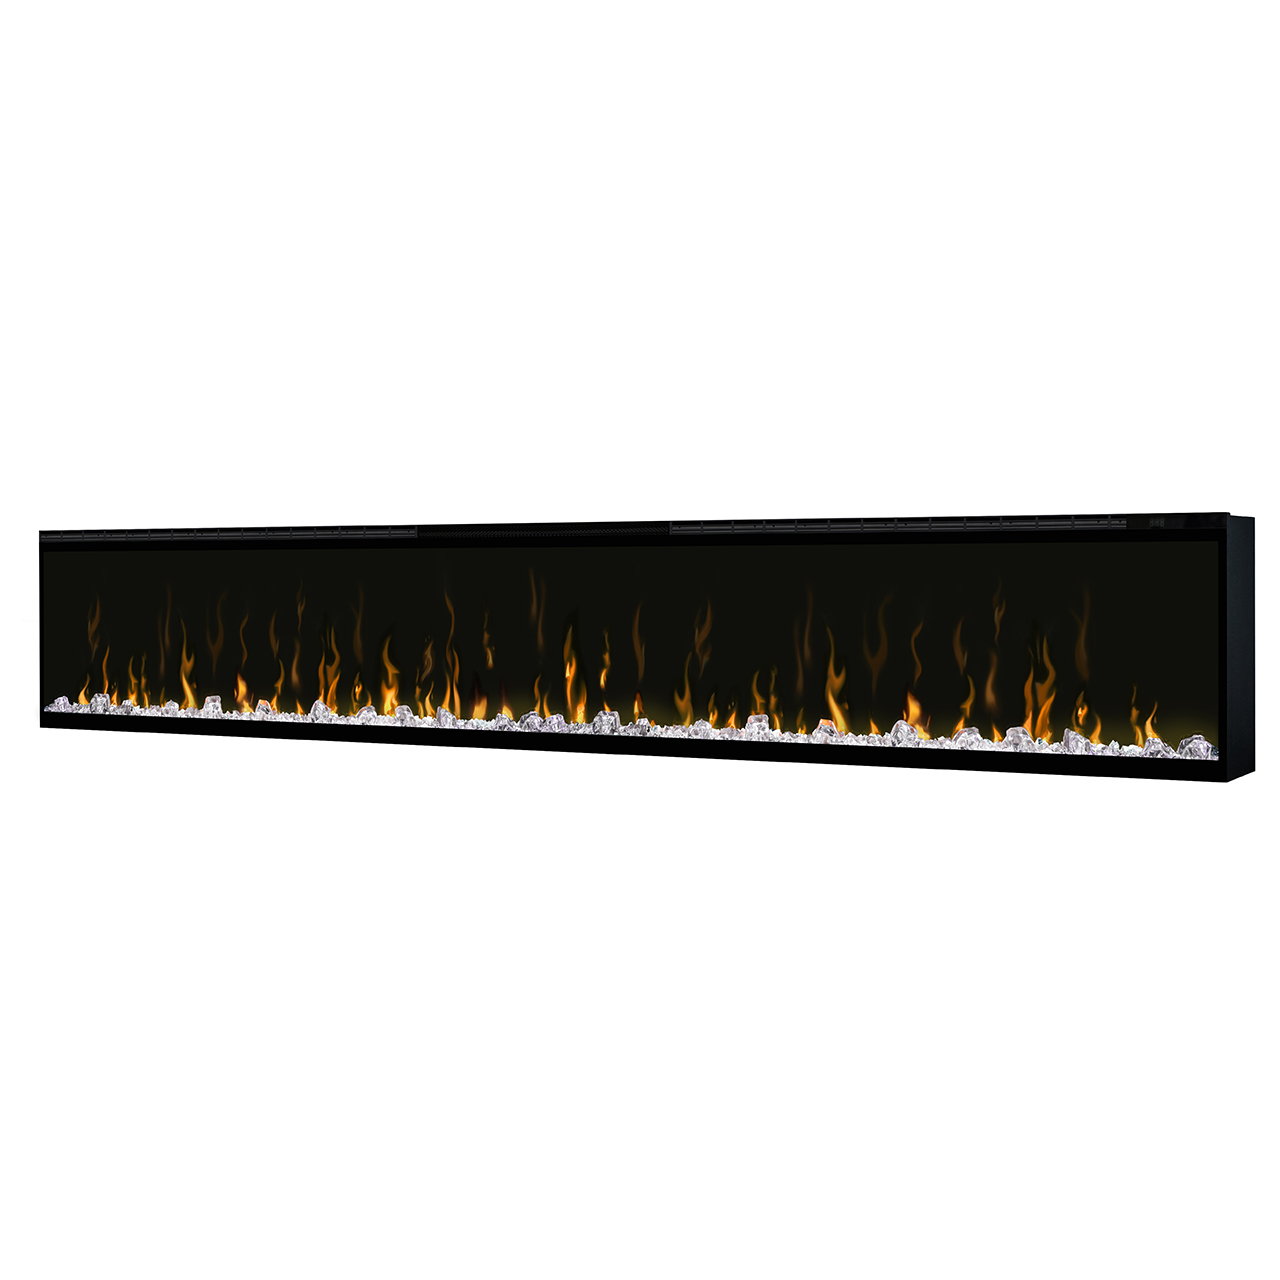 IgniteXL® 100 Linear Electric Fireplace